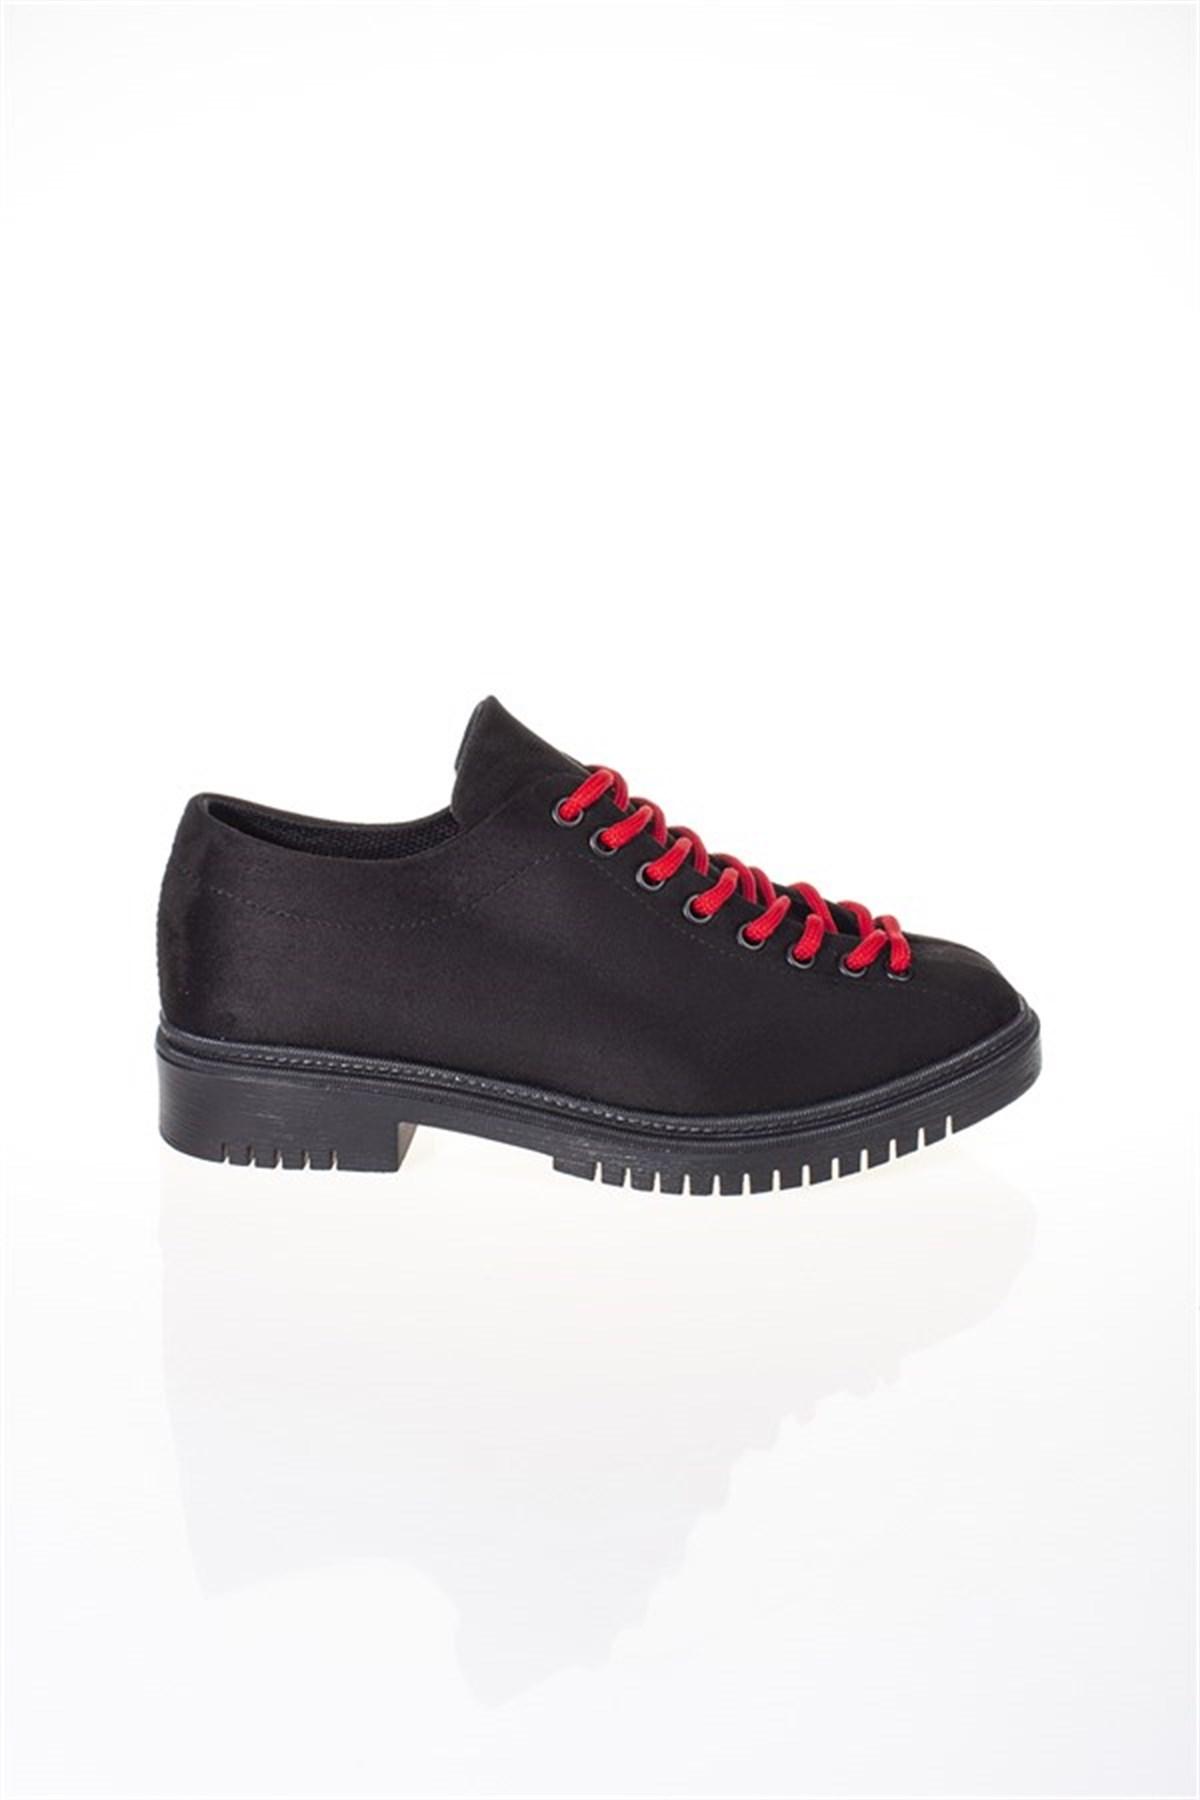 Women's Lace-up Black Shoes